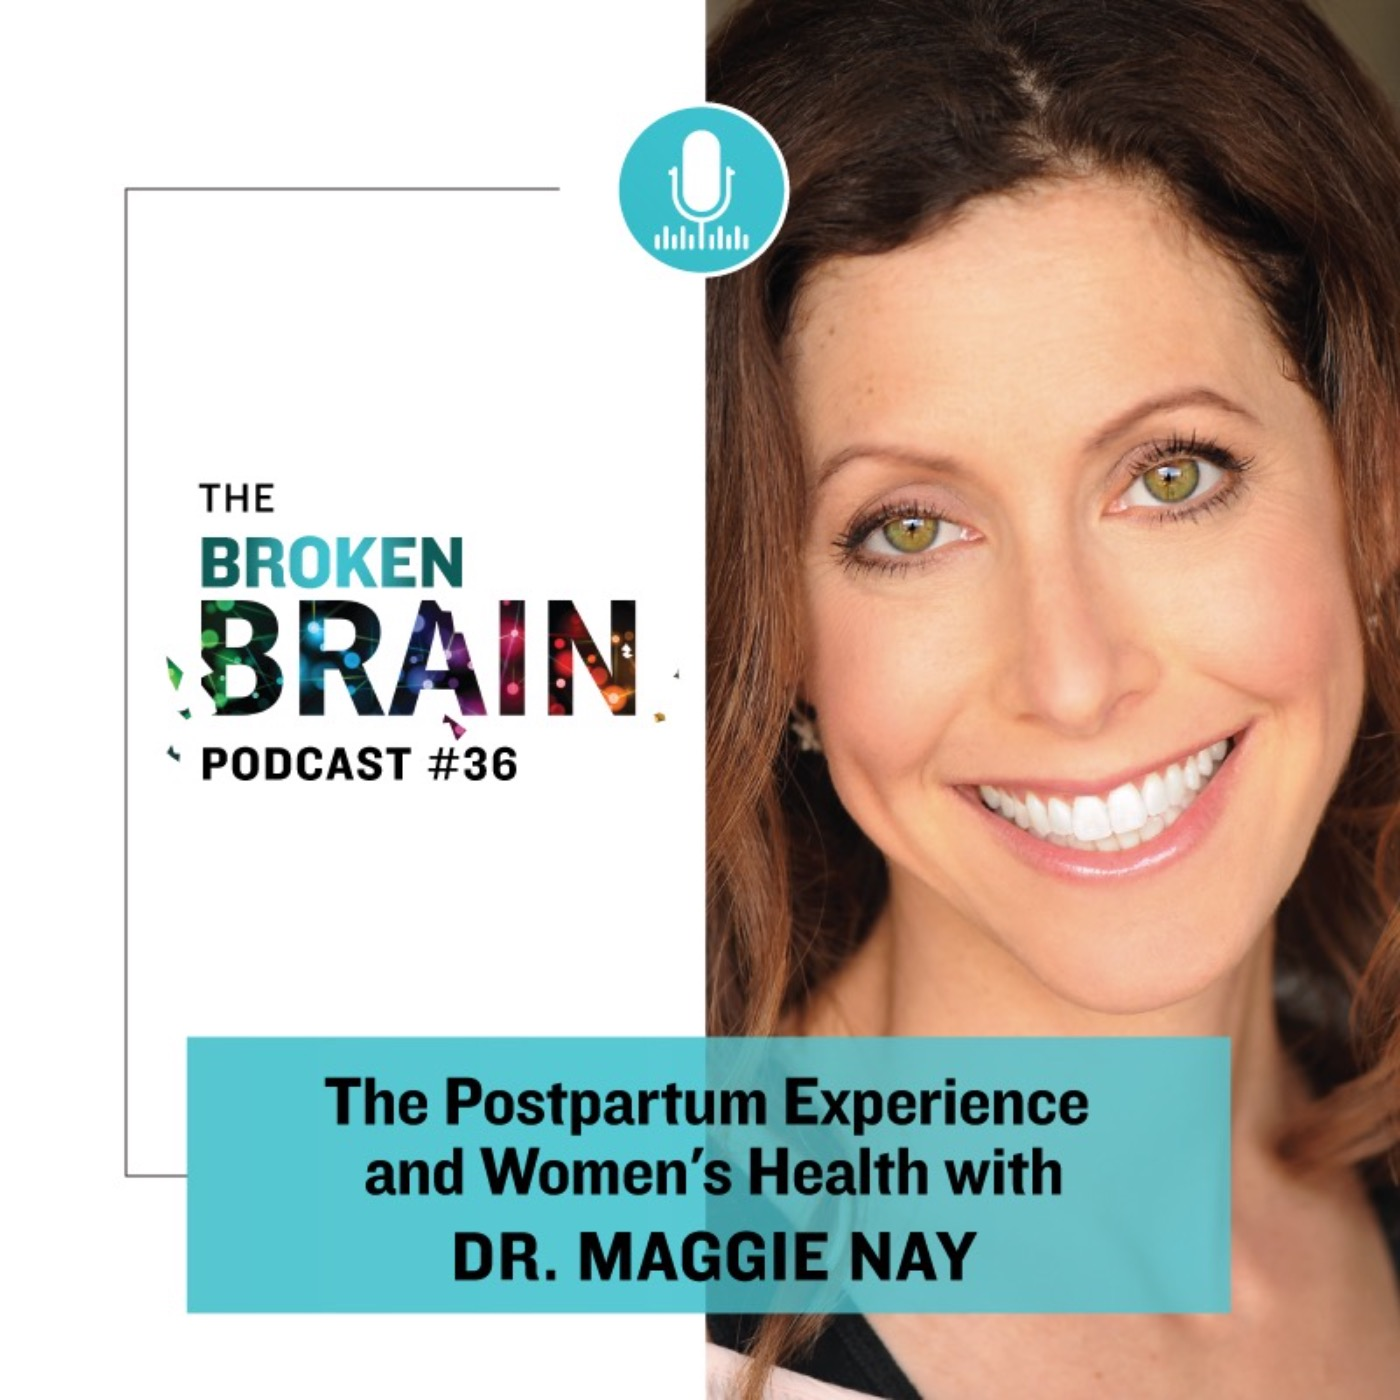 #36: The Postpartum Experience and Women's Health with Dr. Maggie Ney